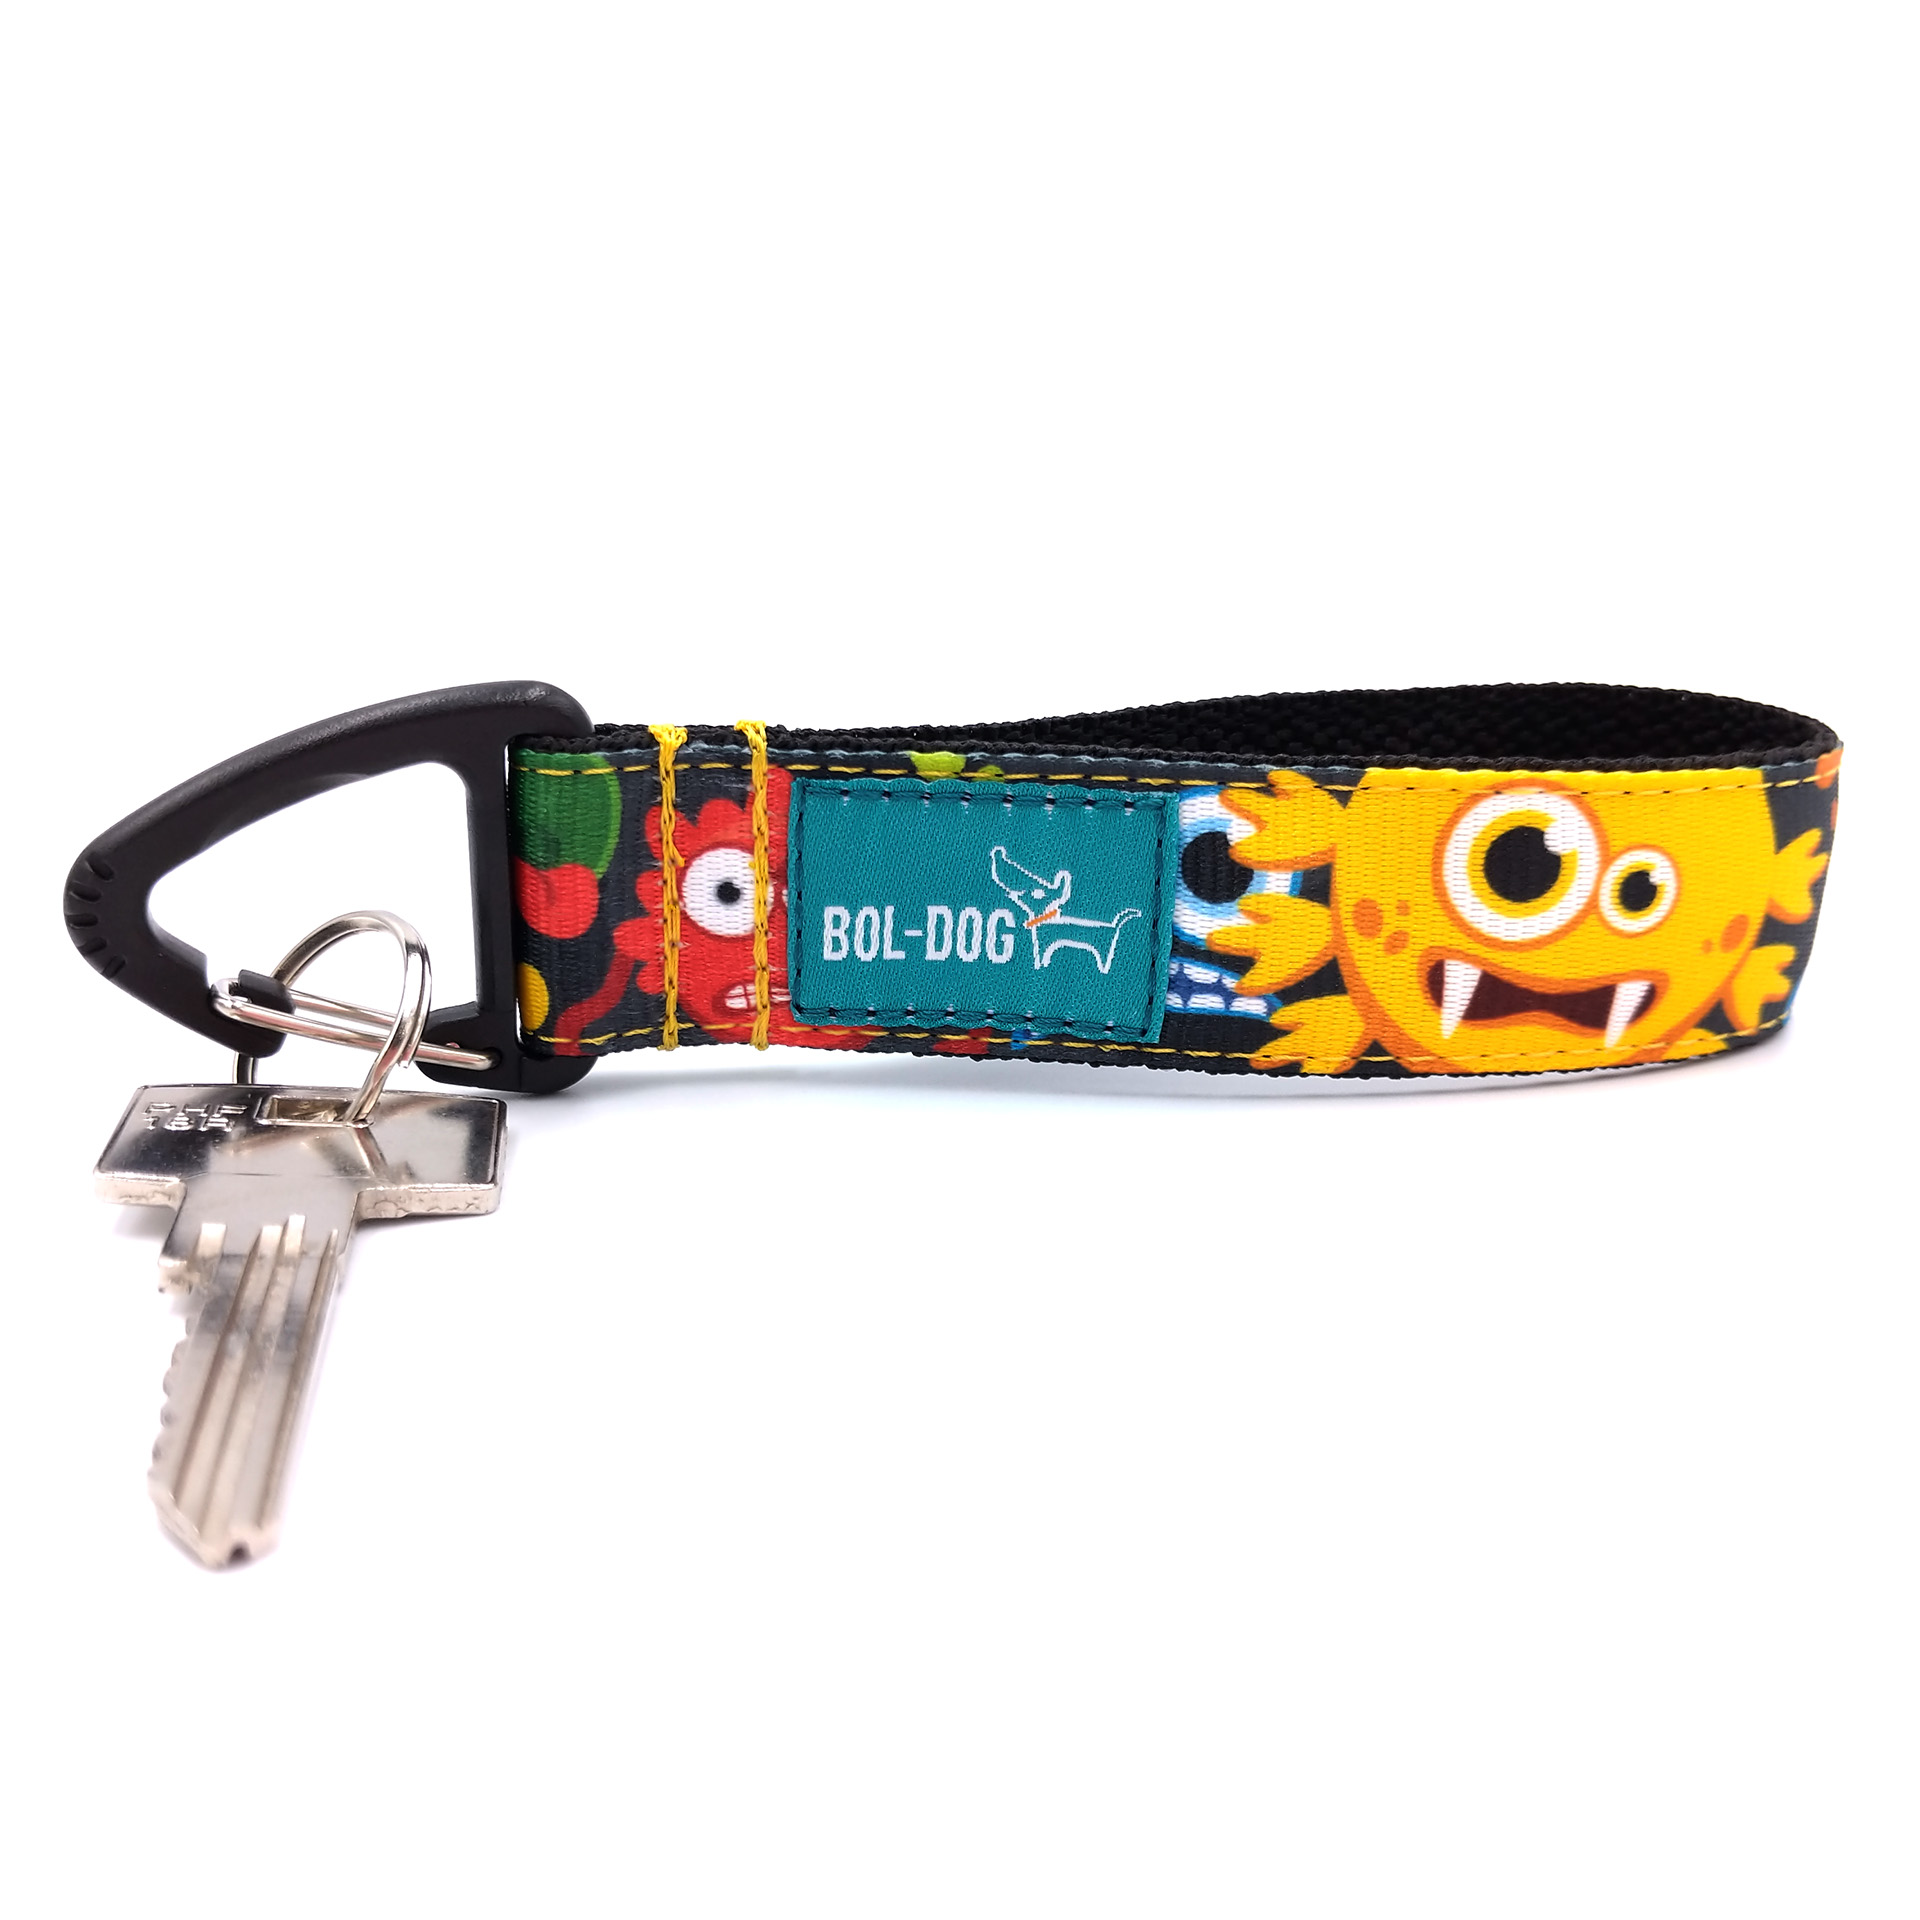 Monsters key holder